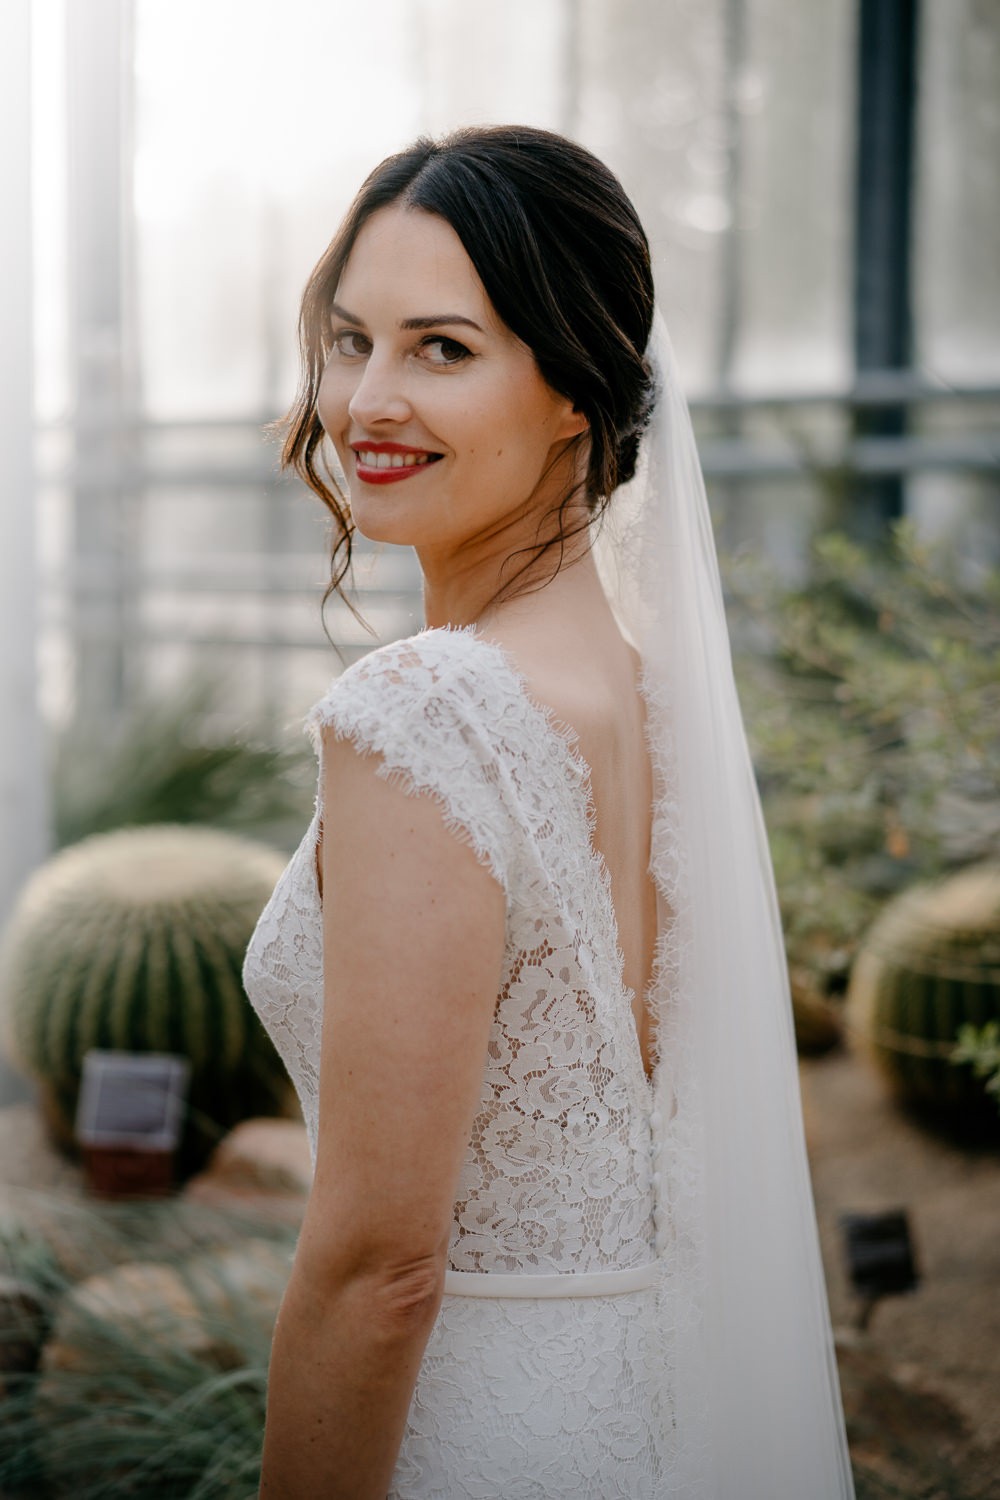 bridal portrait by mark hadden amsterdam wedding photographer